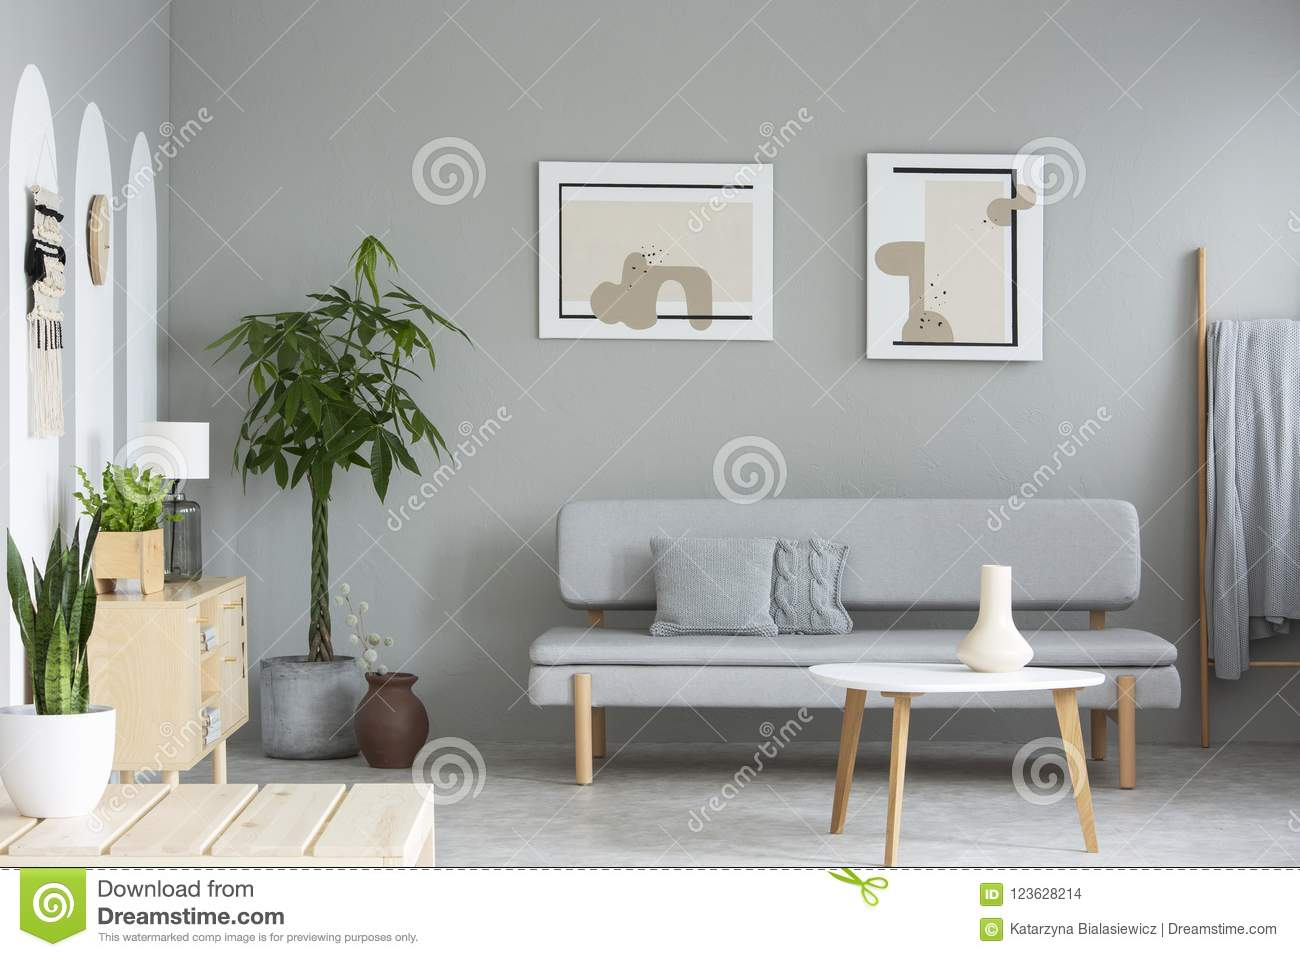 wooden table in front of grey sofa in simple living room interior rh dreamstime com there is a table in front of the sofa there is a table in front of the sofa